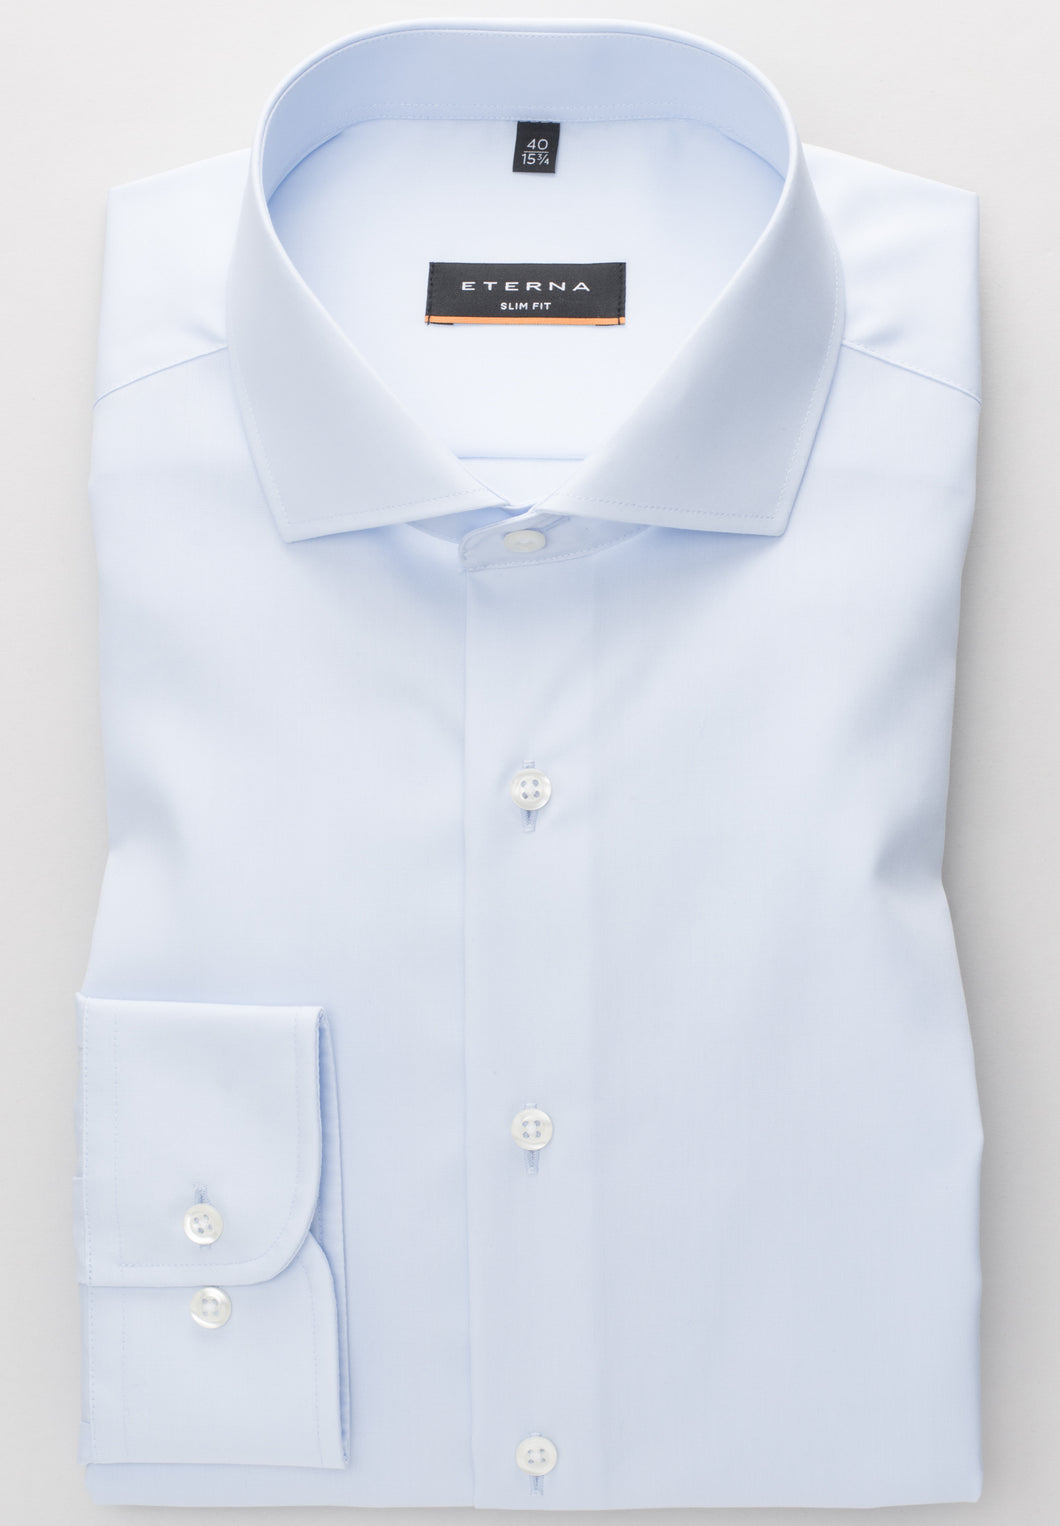 Eterna Slim Fit Shirt Blue 1100/10